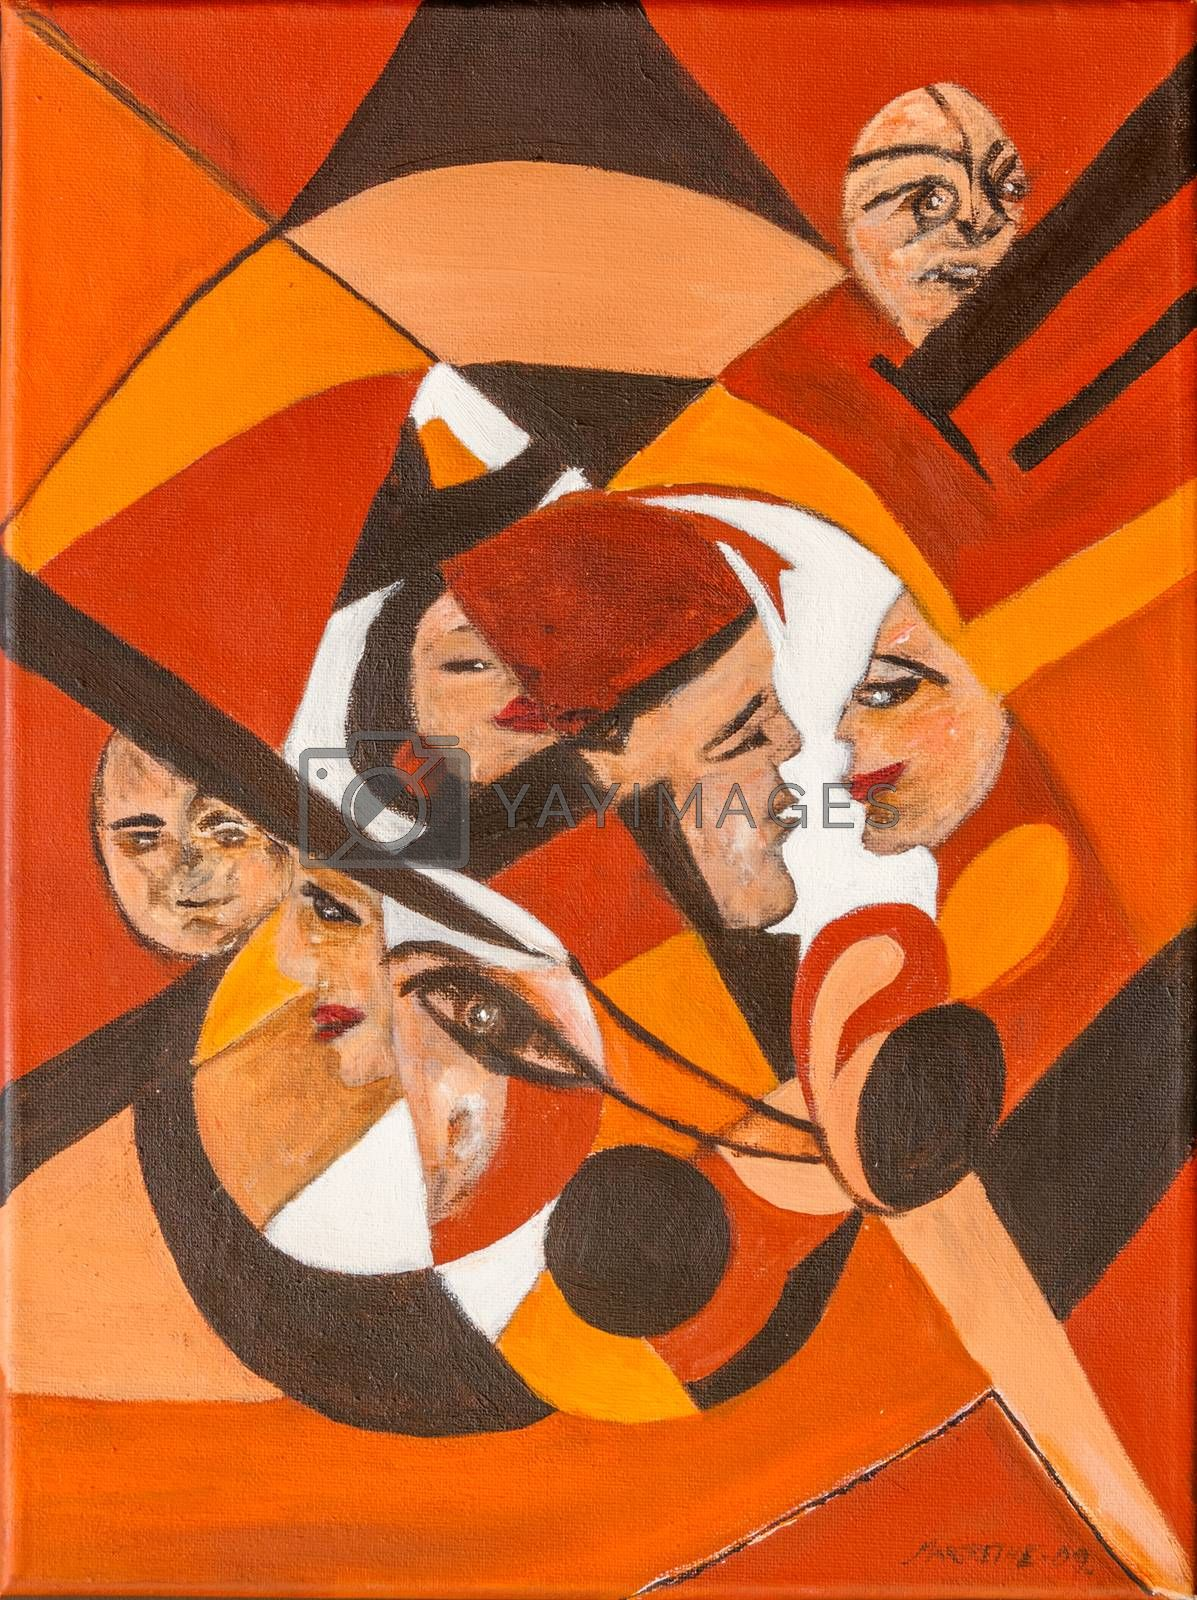 The clown in the circle. Both figurative and non-figurative at the same time. Different clown faces in a circle. A scene from many situations in life.Orange, dark brown, white colors.